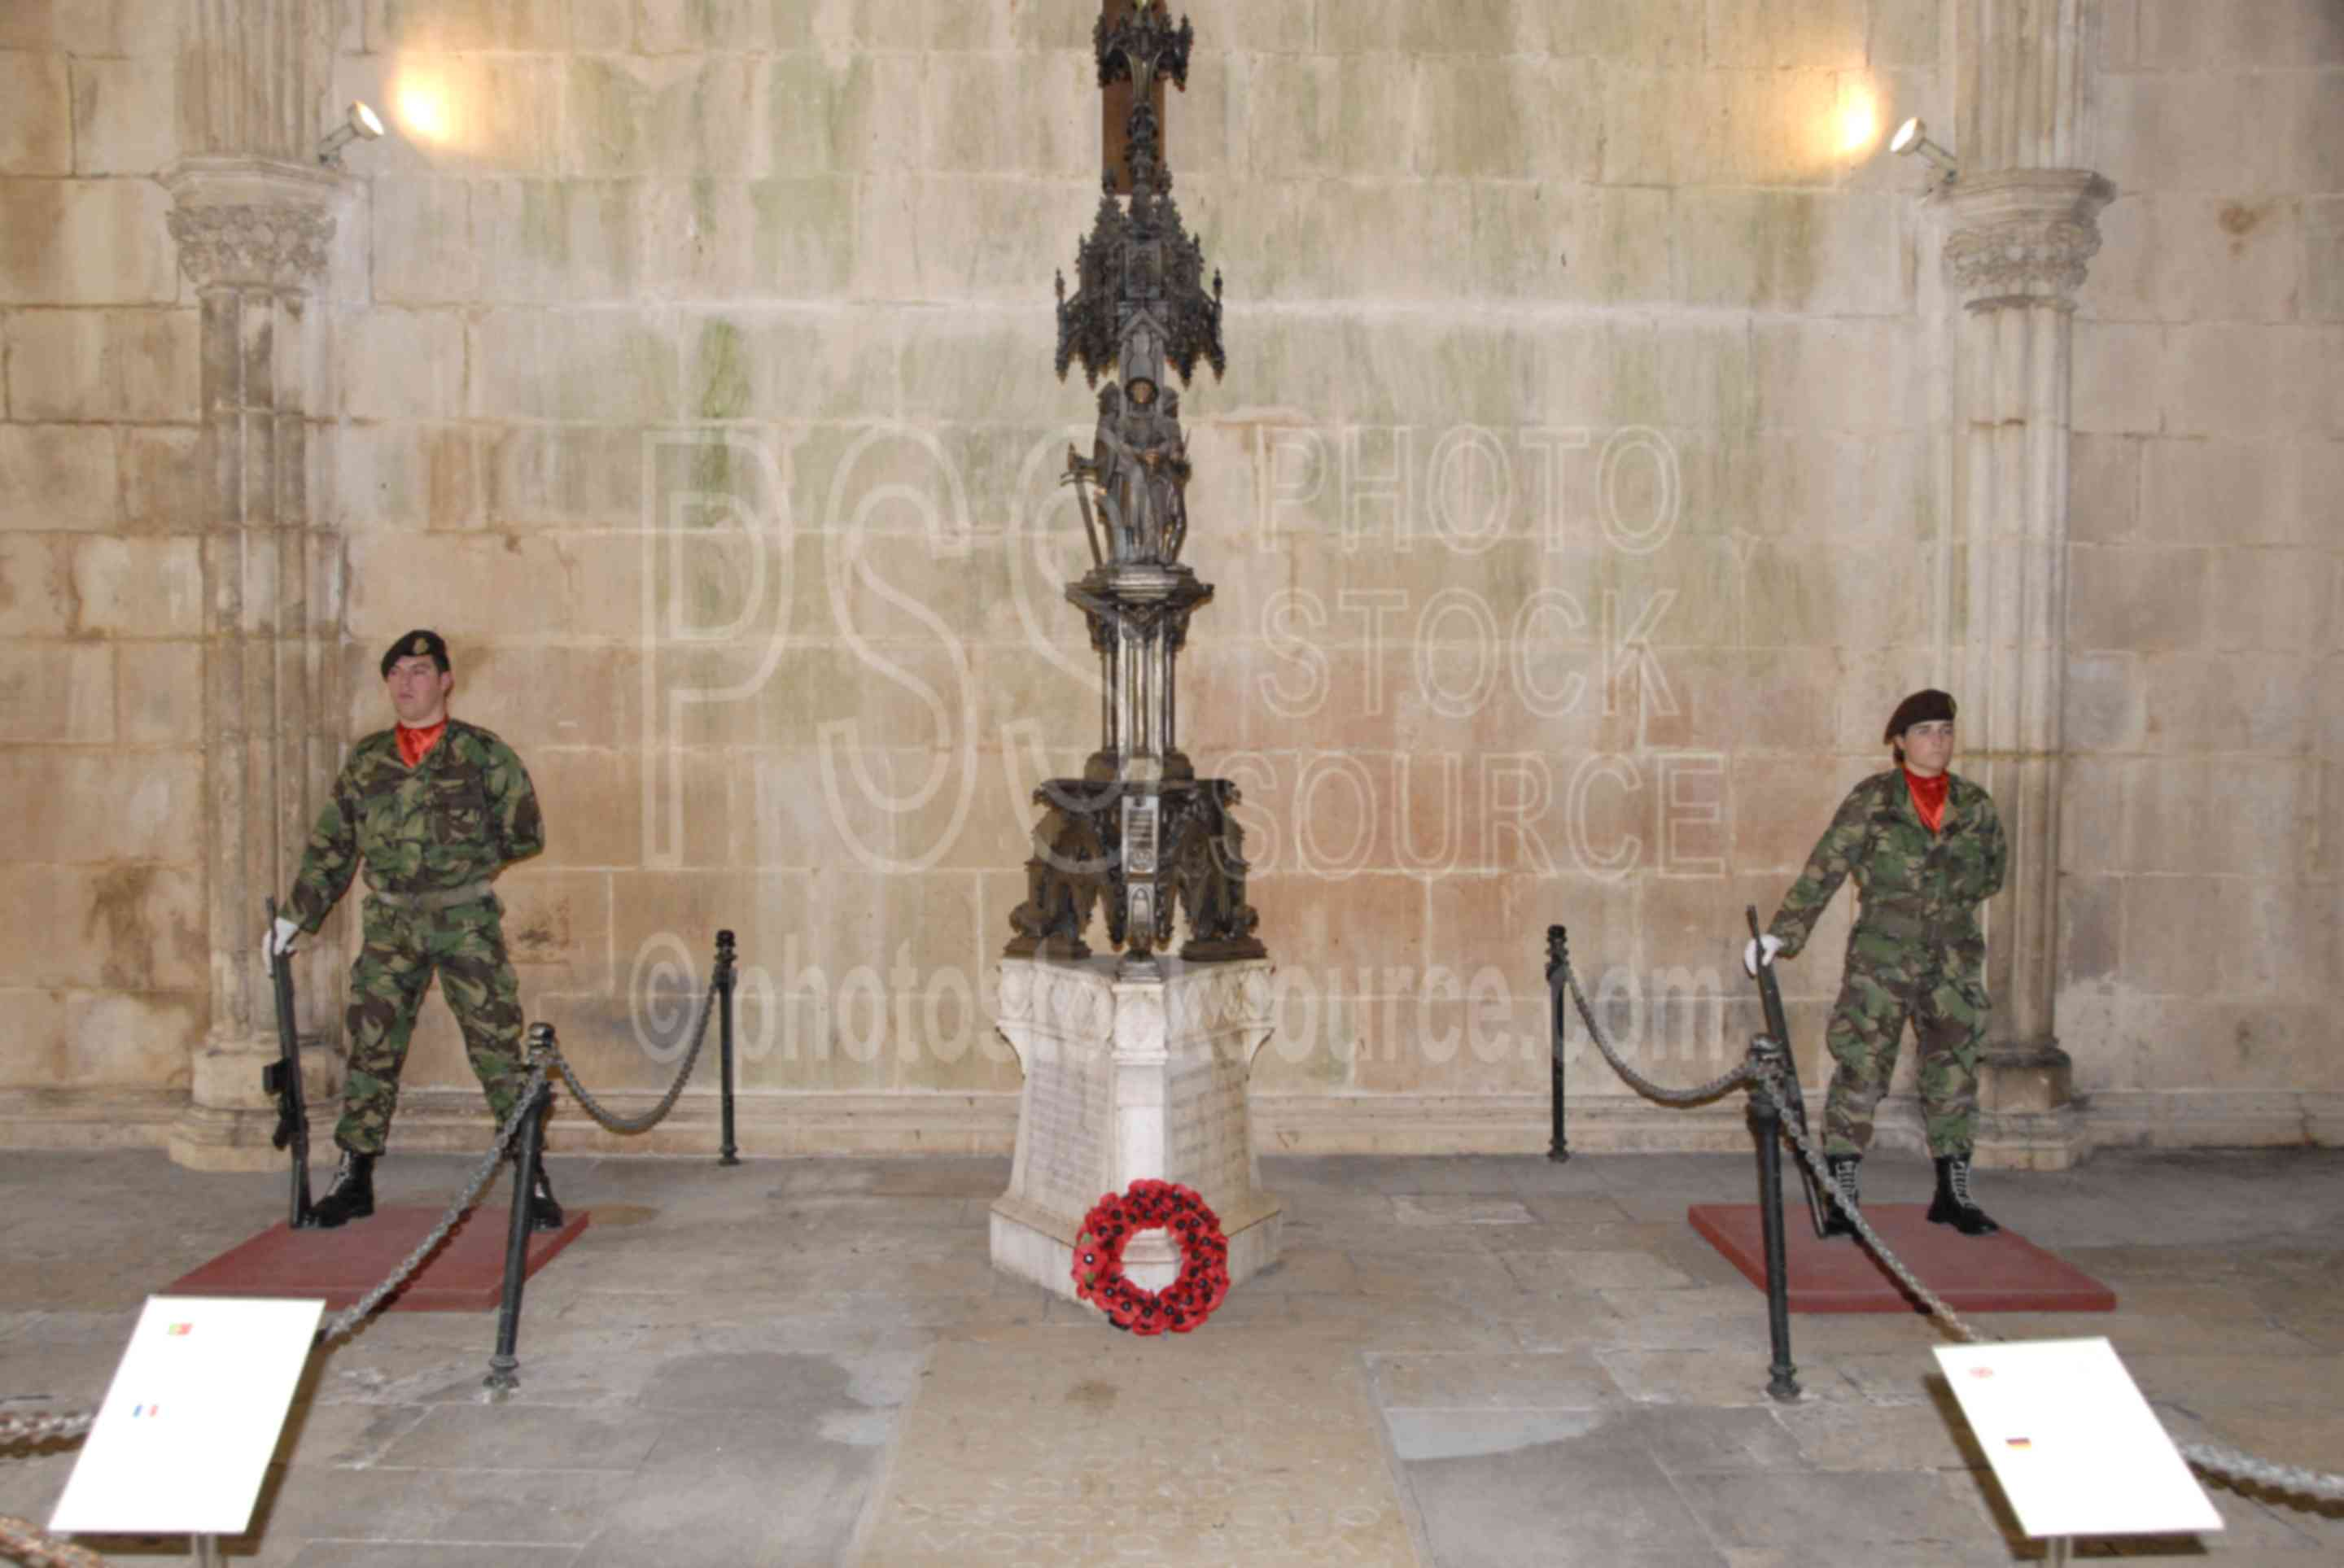 Tomb of the Unknown,mosterio de santa maria da vitoria,tomb,cathedral,guard,soldier,mans,military,cloisters,churches,religion